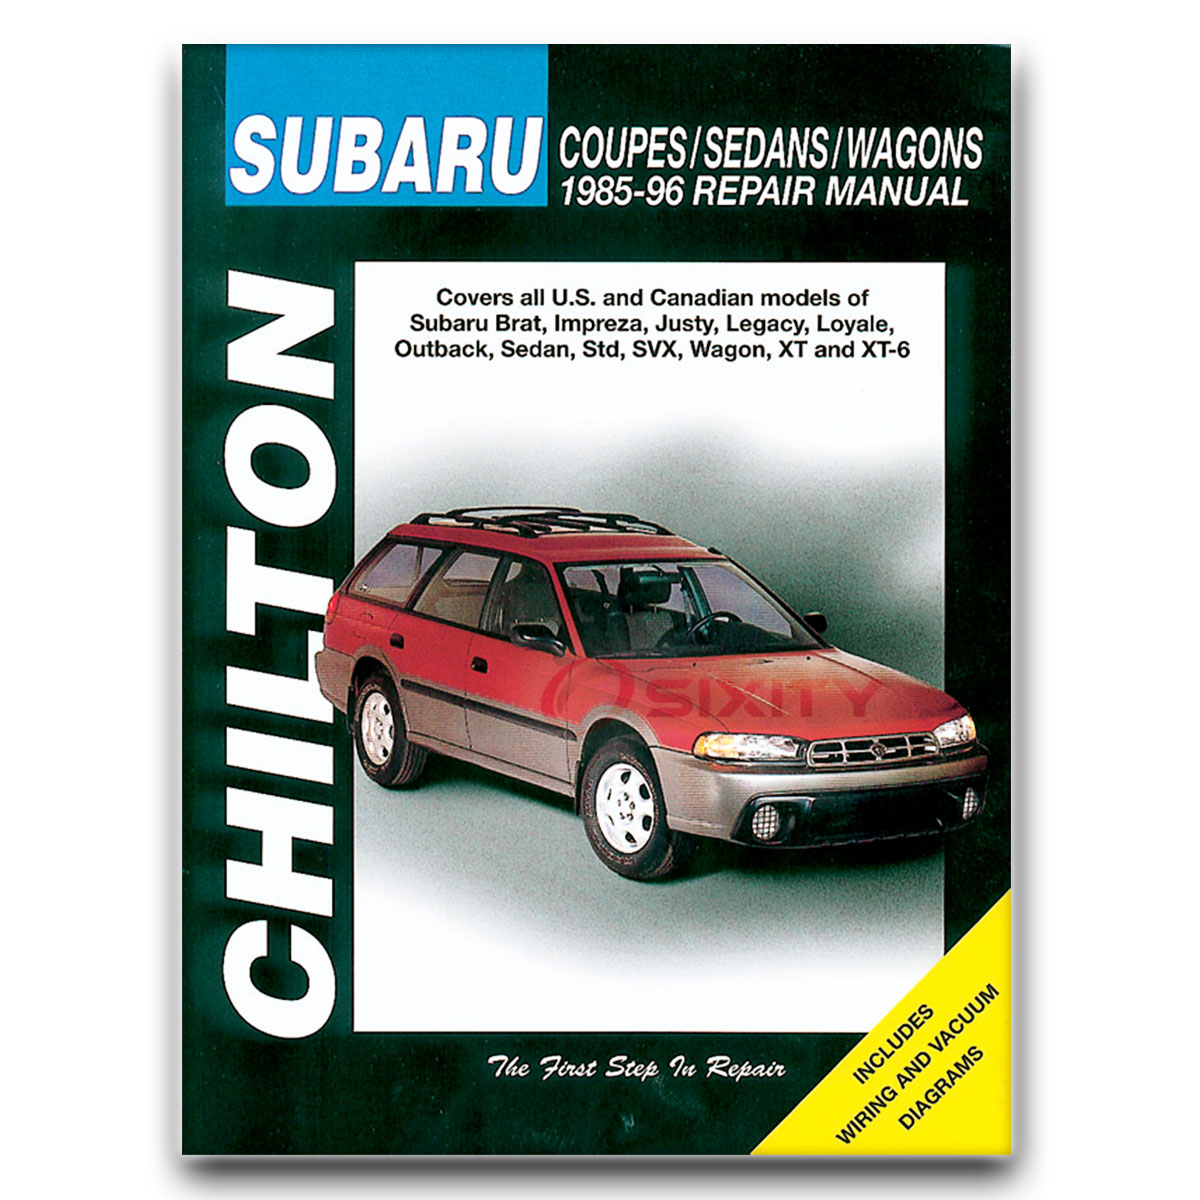 Subaru Svx Service Manual 1992 Wiring Diagram Chilton Repair For Lsl Lsi Shop Garage Rh Ebay Com Wrx Brz